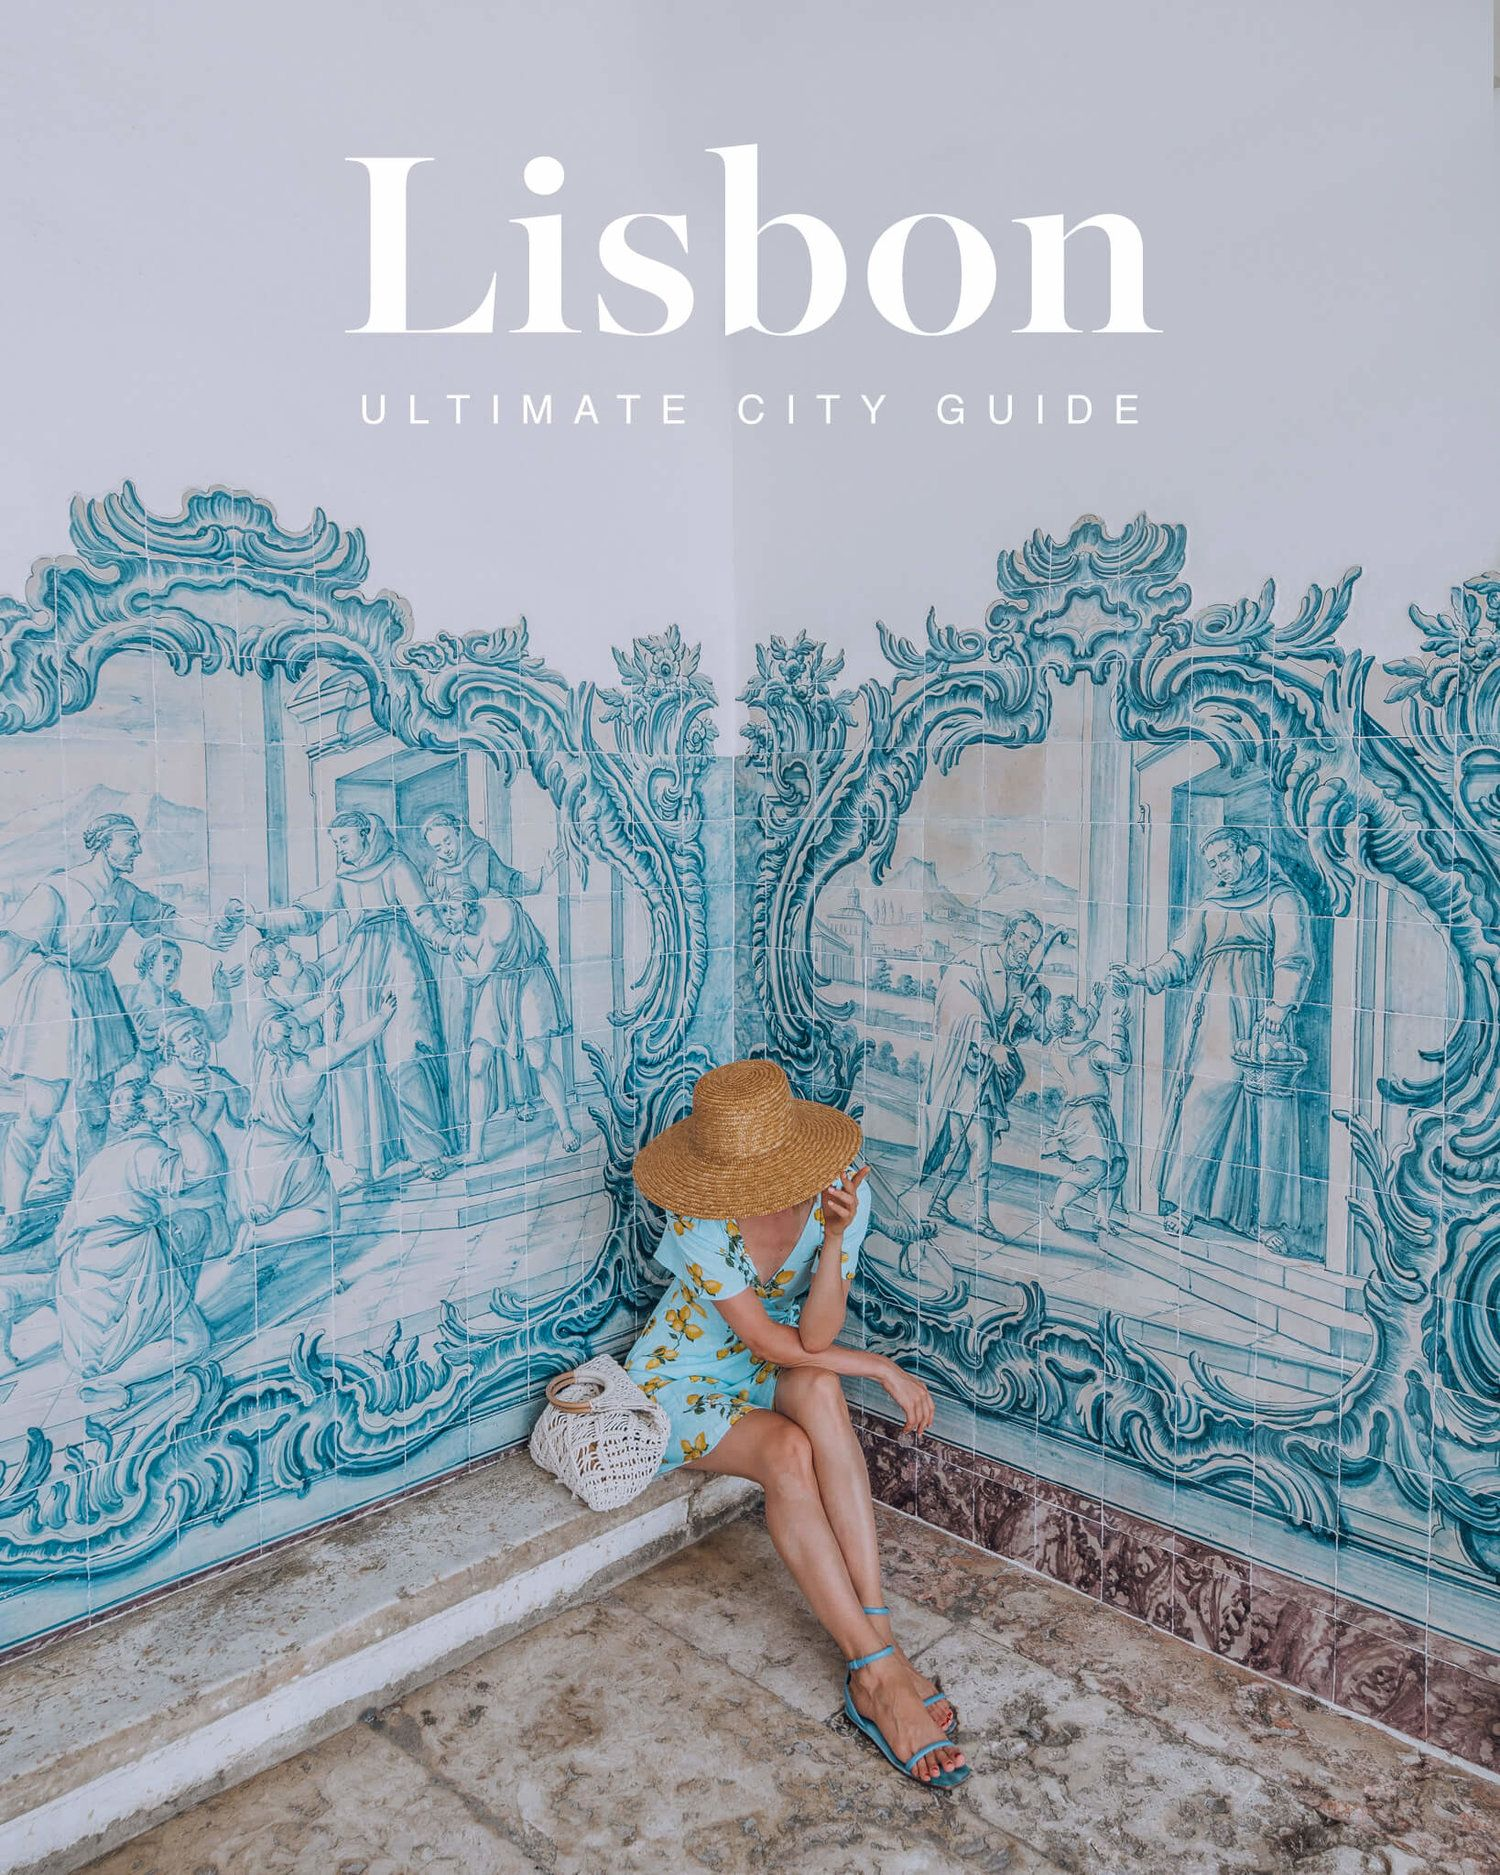 Lisbon Ultimate City Guide  || What To Do in Lisbon || Lisbon Most Instagrammable places || Best of Lisbon || Lisbon Must See and Do  || #lisbon #lisboncityguide #lisbon